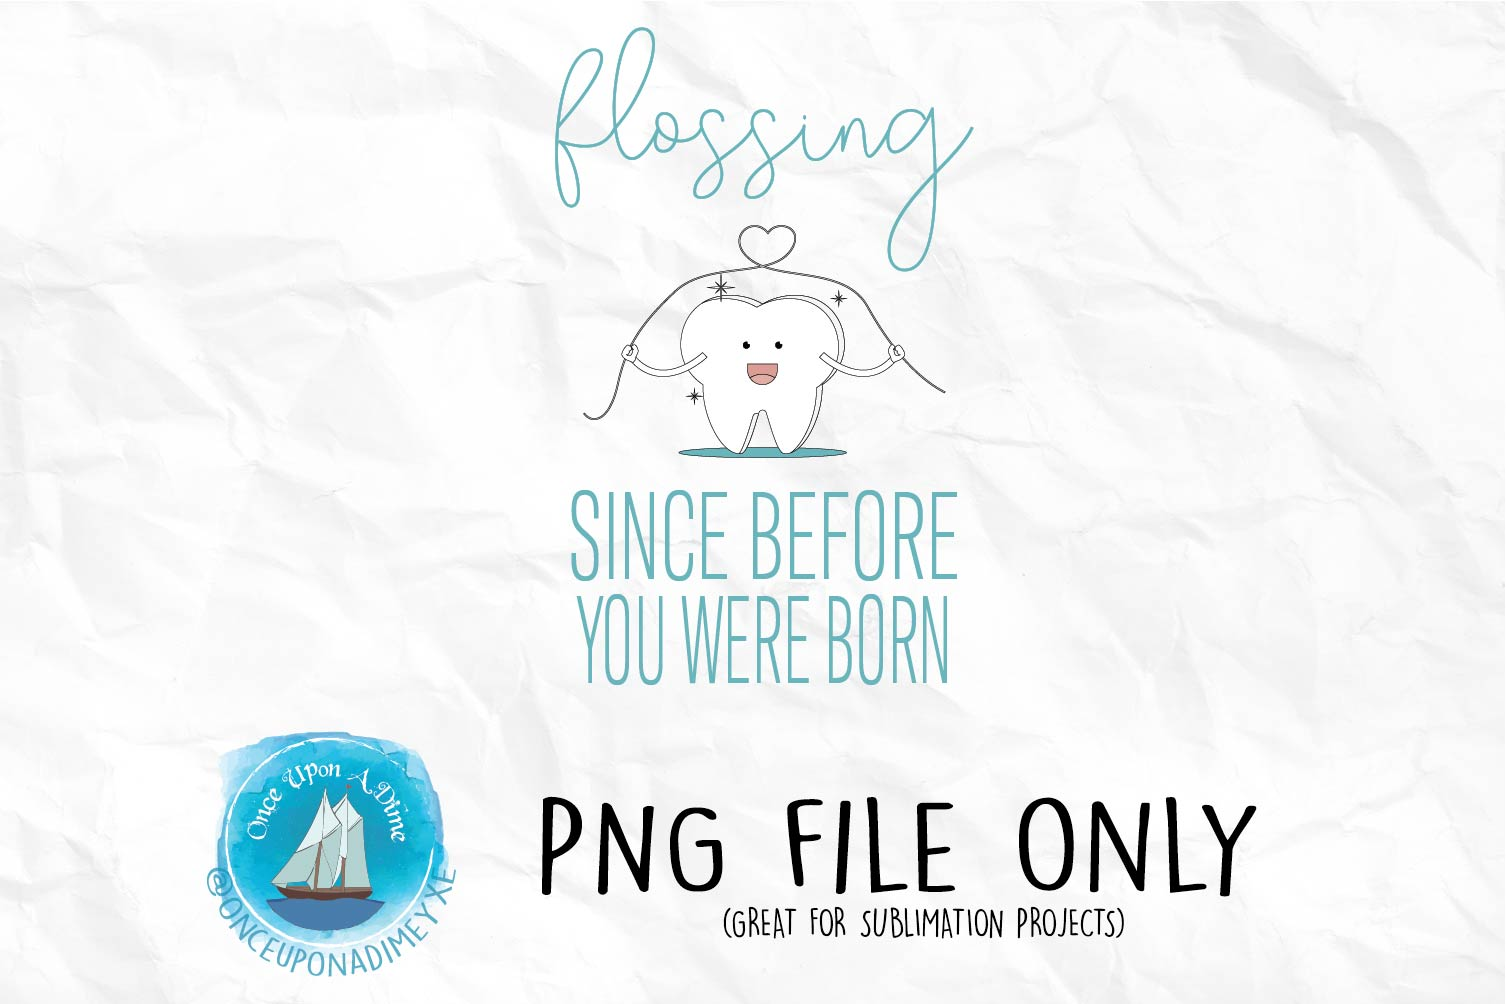 Flossing Since Before You Were Born example image 1